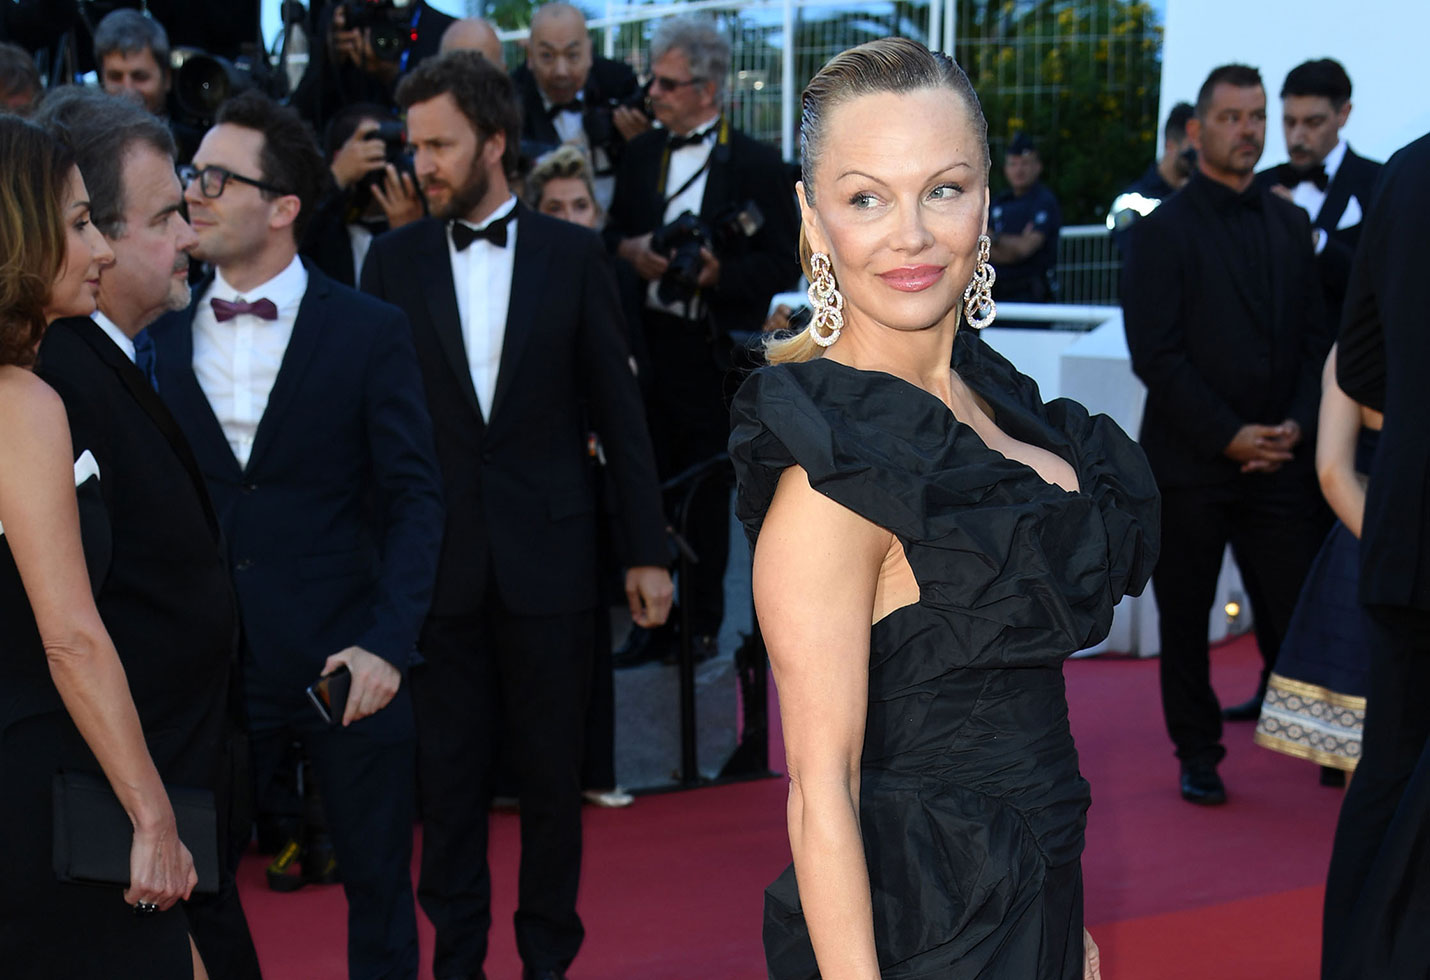 Pamela anderson unrecognizable cannes photos